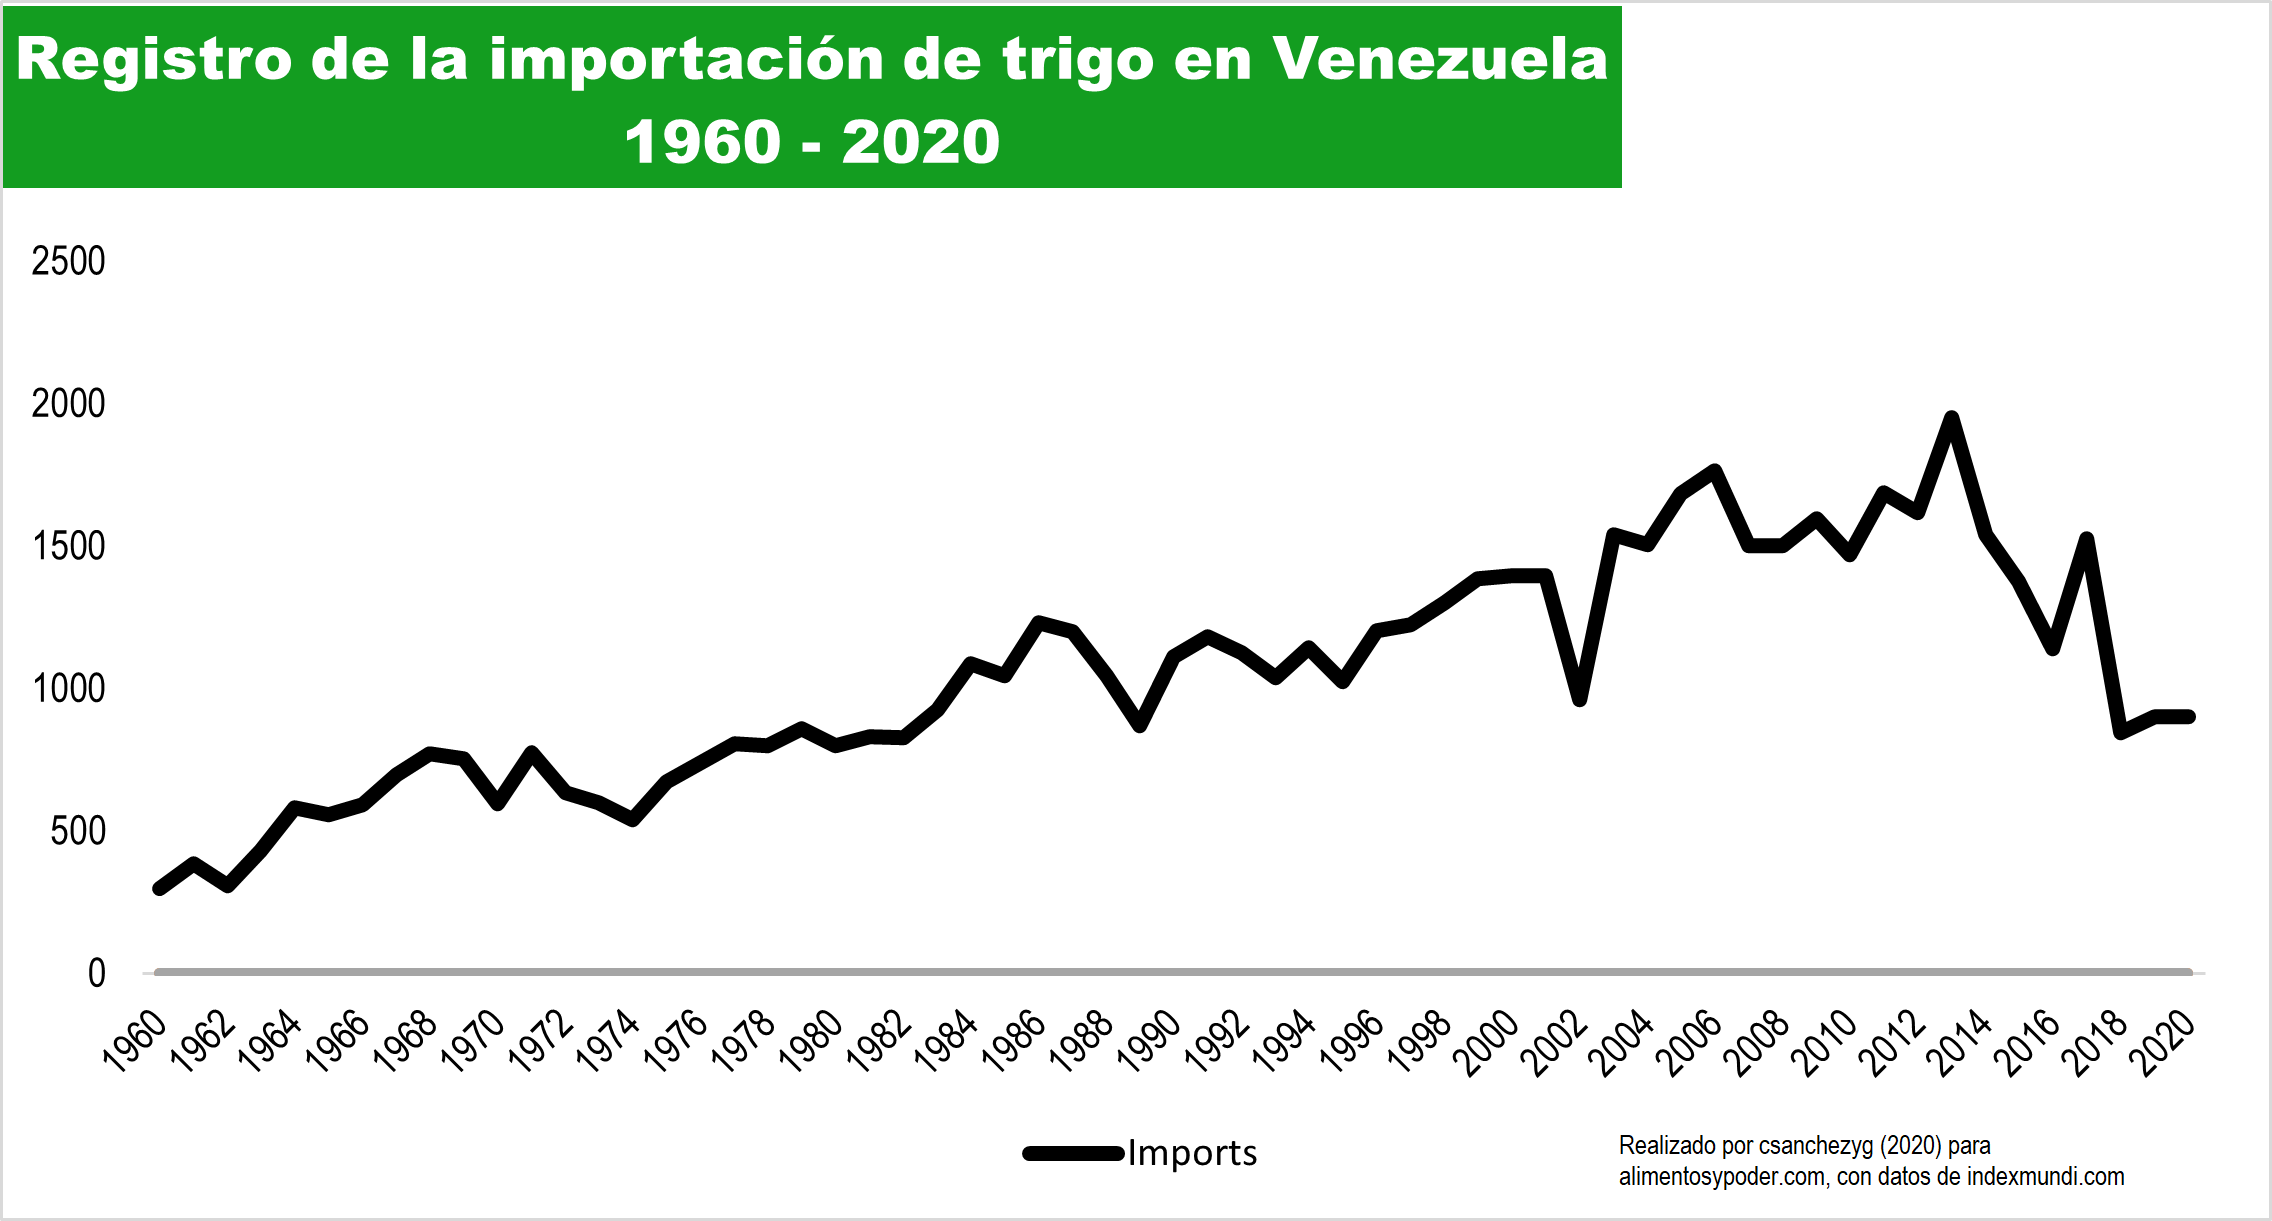 Registration of the importation of wheat in Venezuela 1960 - 2020 (Photo: Alimentos y Poder)